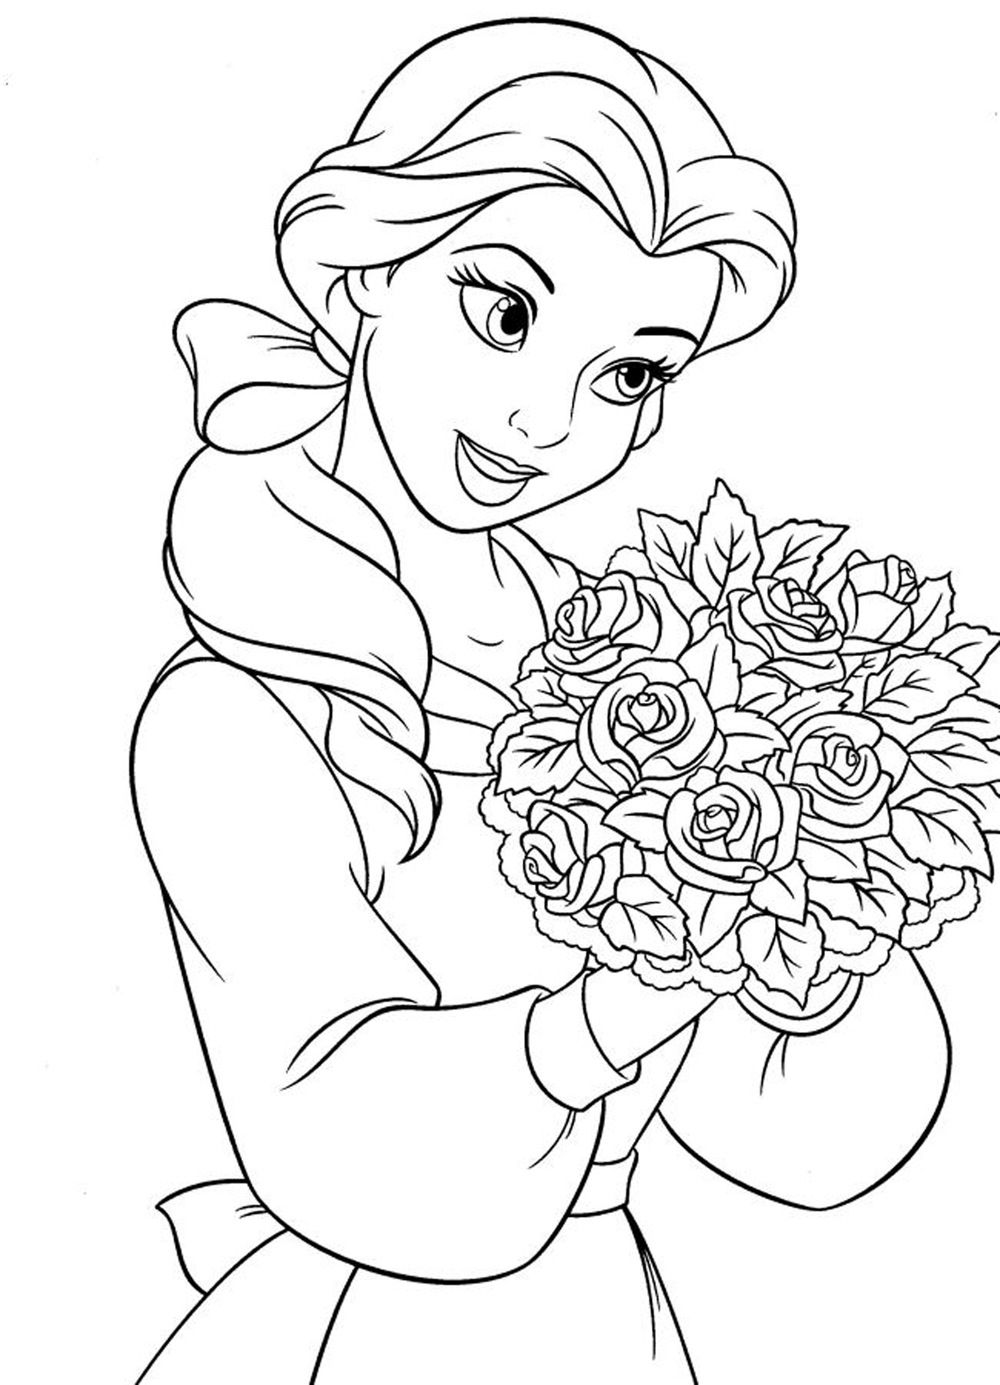 Coloring pages for girl - Explore Coloring Pages For Girls Kids Coloring And More